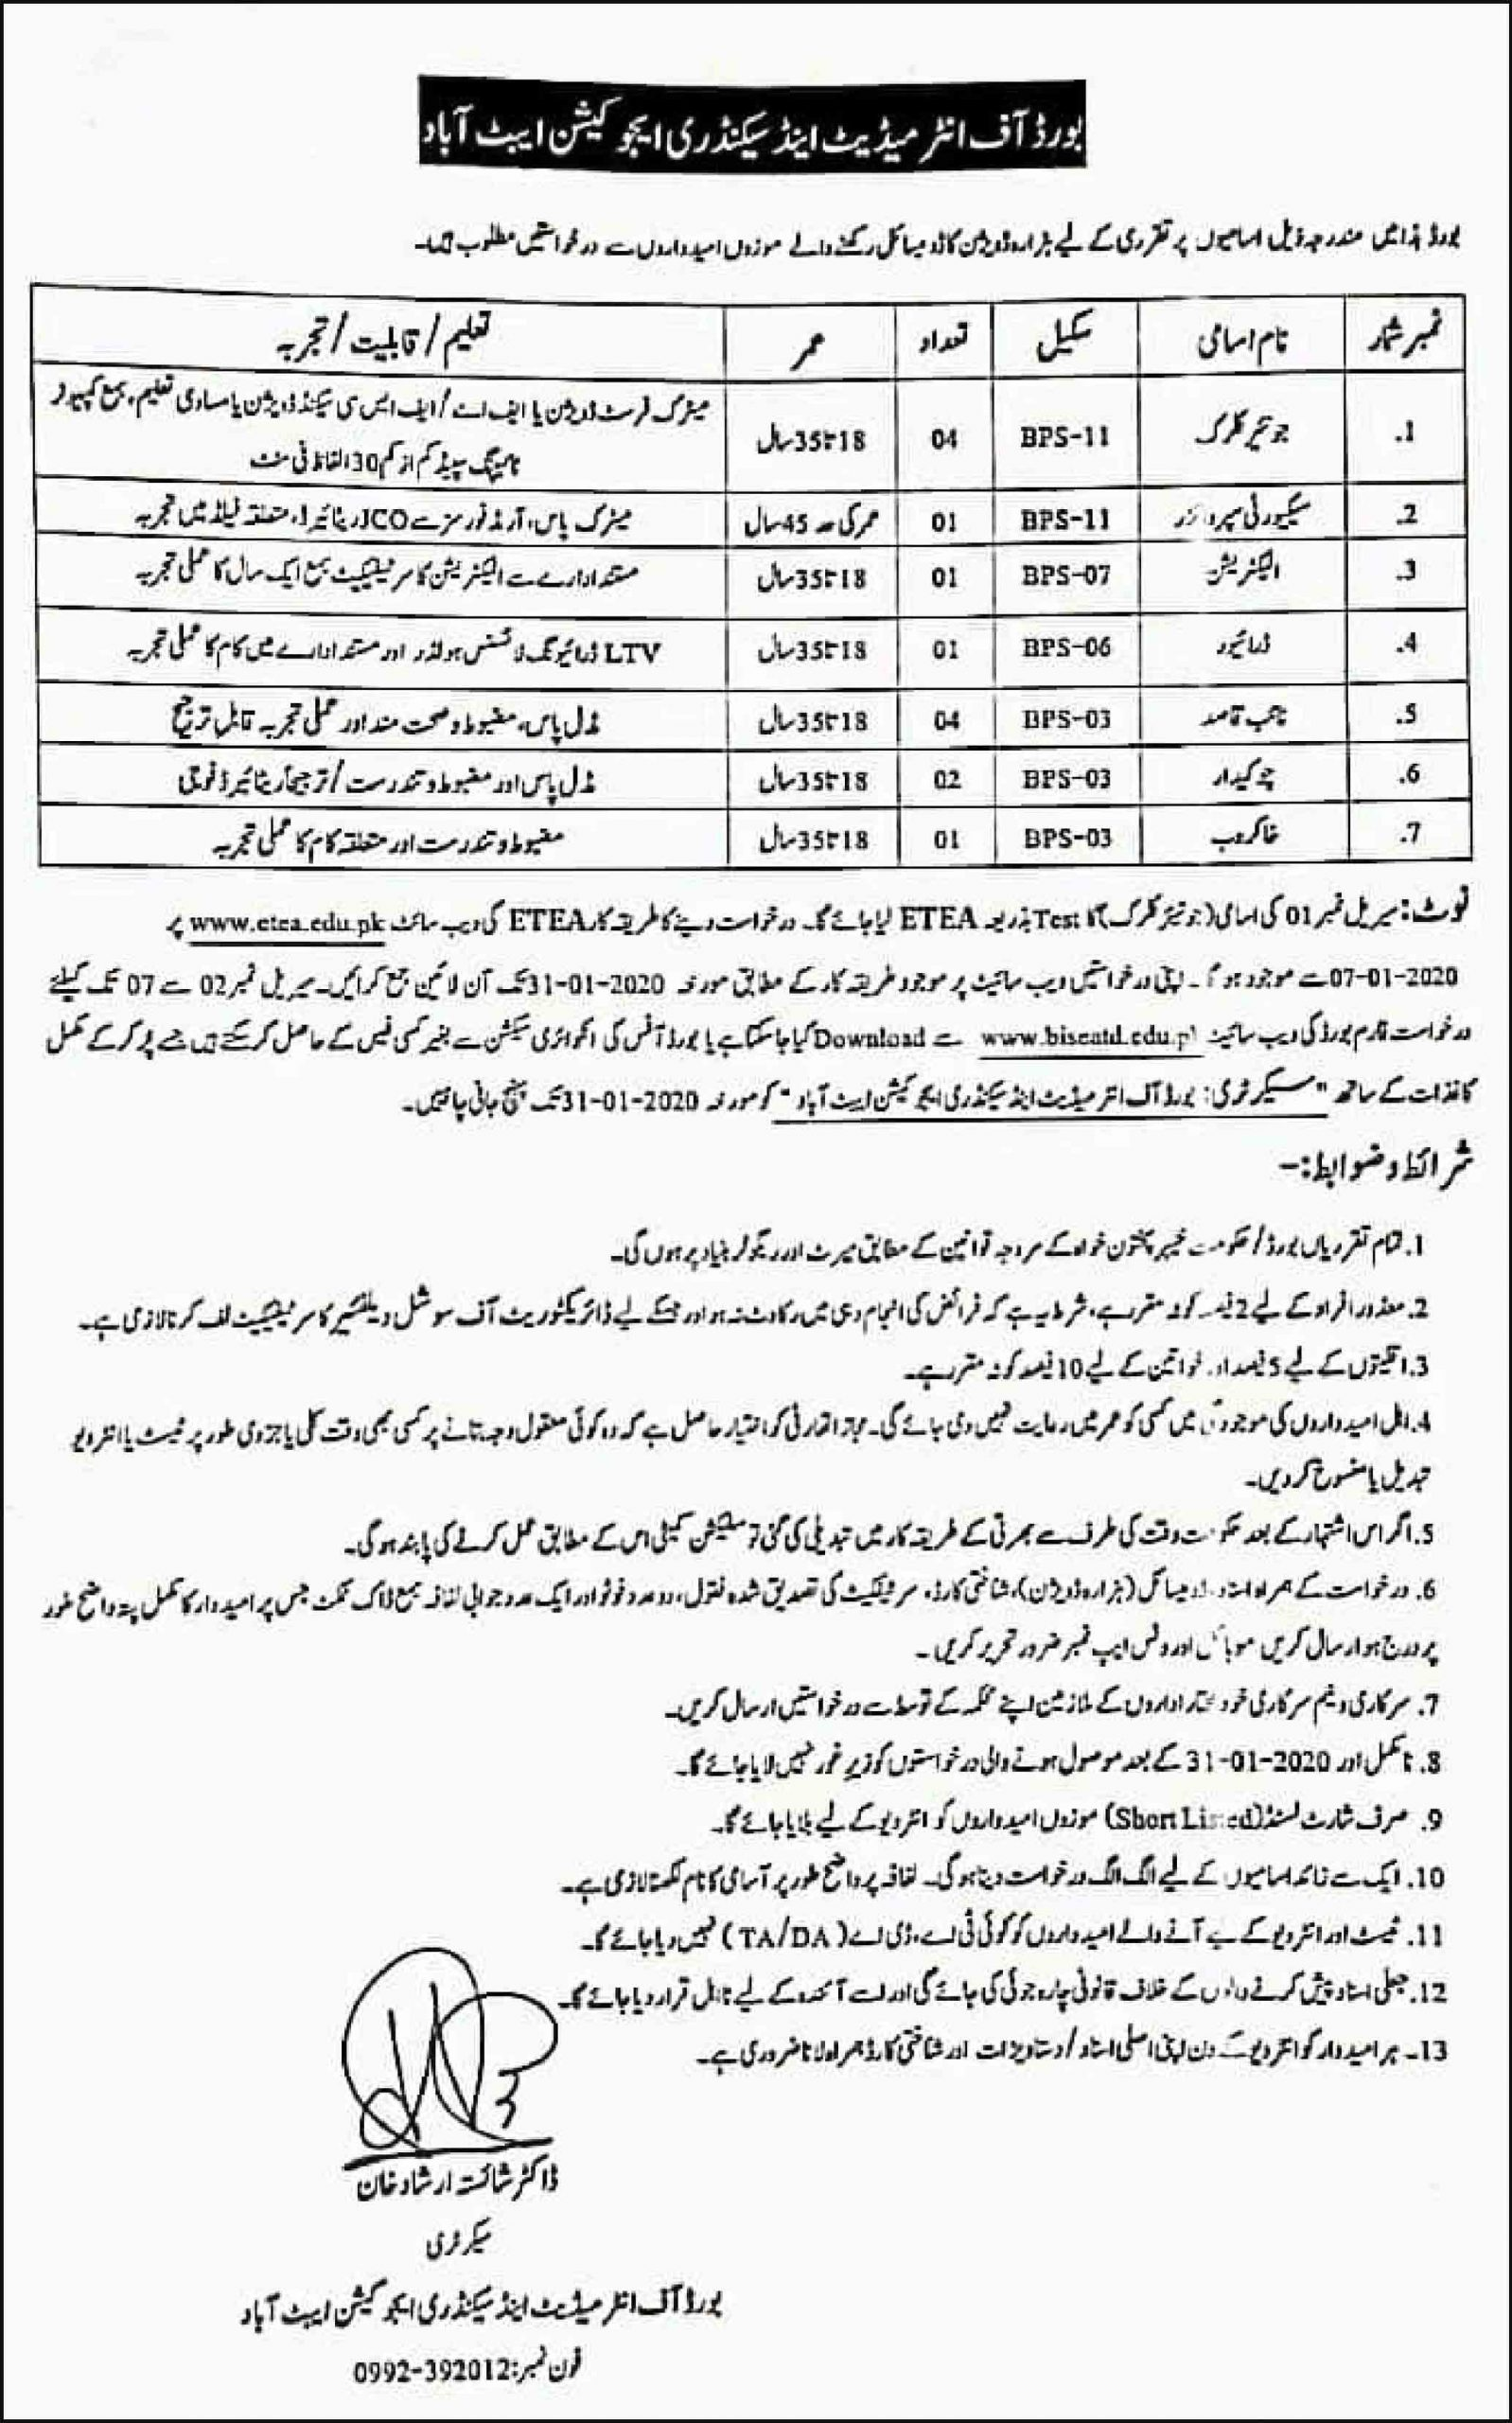 BISE Abbottabad Jobs ETEA Roll No Slip Board of Intermediate and Secondary Education, Abbottabad